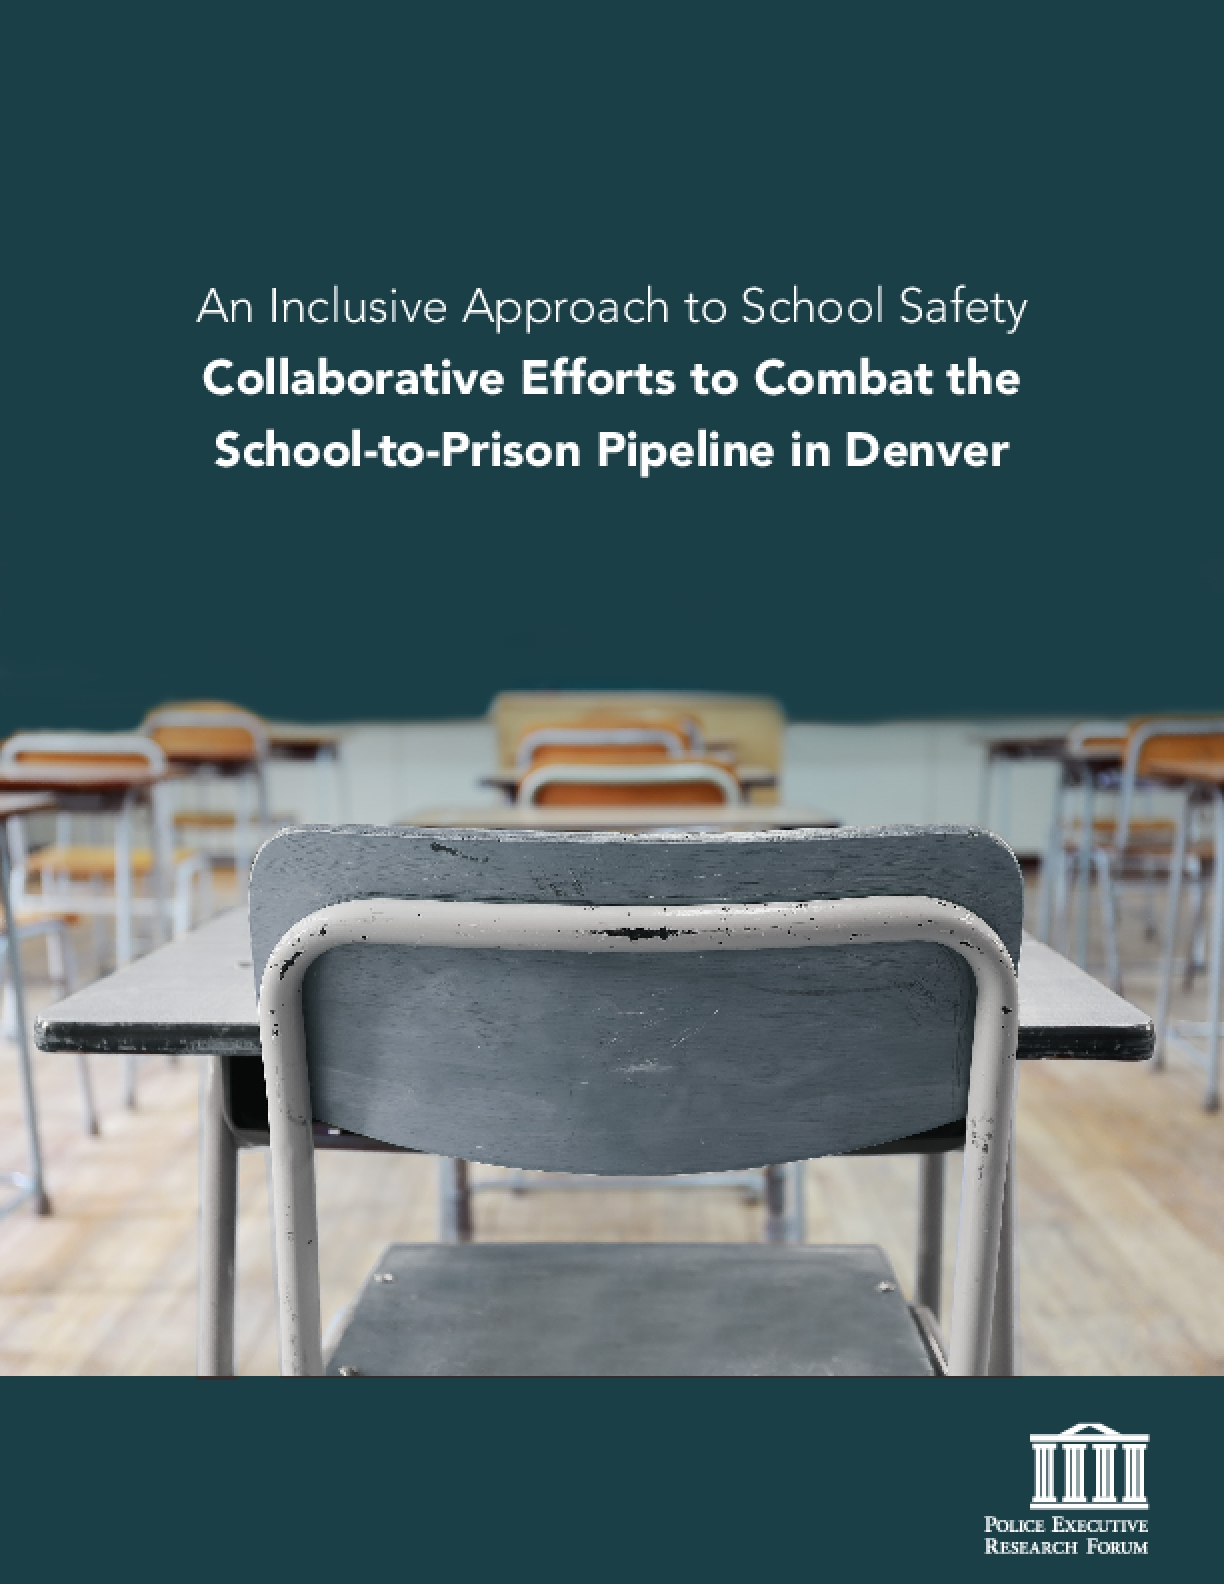 An Inclusive Approach to School Safety Collaborative Efforts to Combat the School-to-Prison Pipeline in Denver